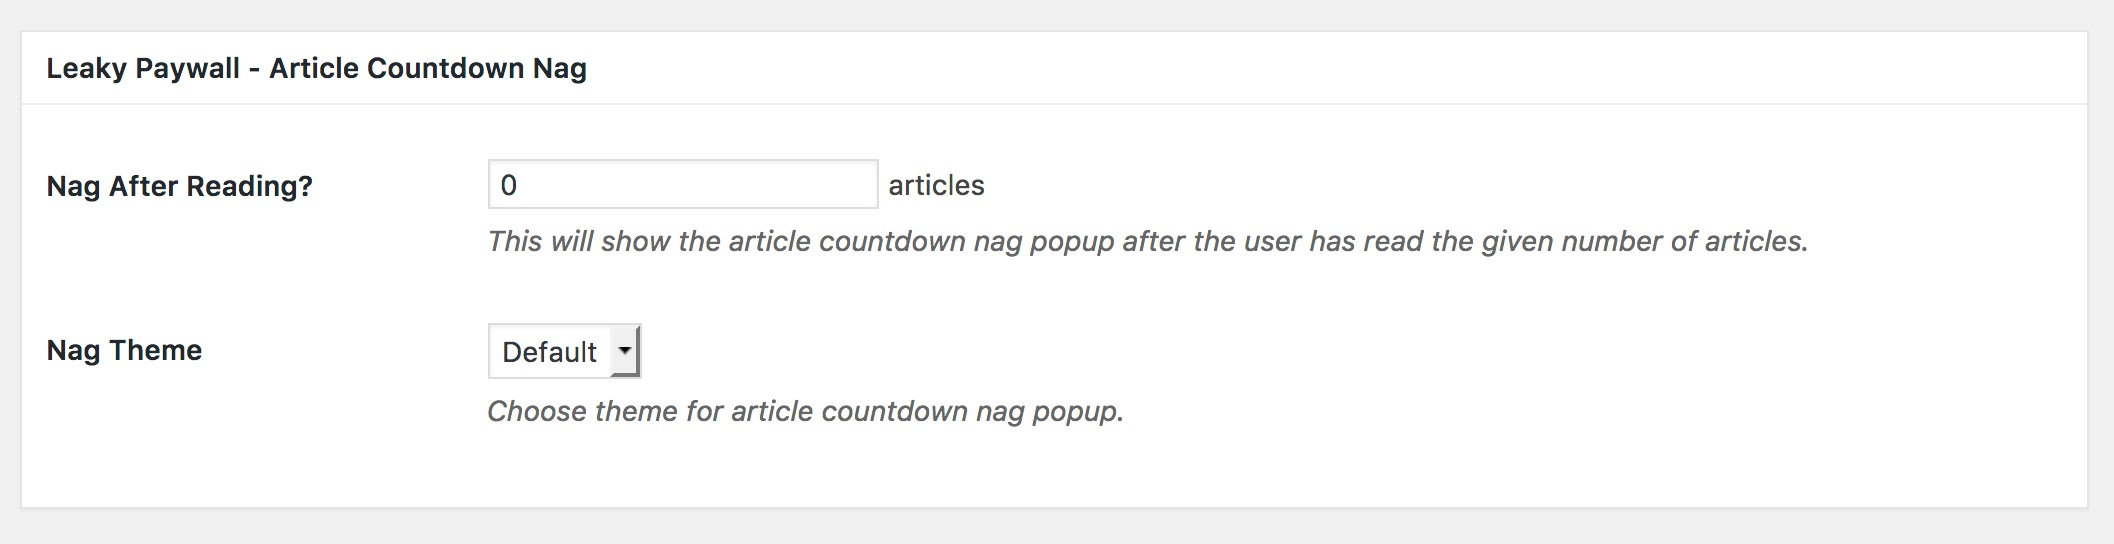 leaky paywall countdown settings